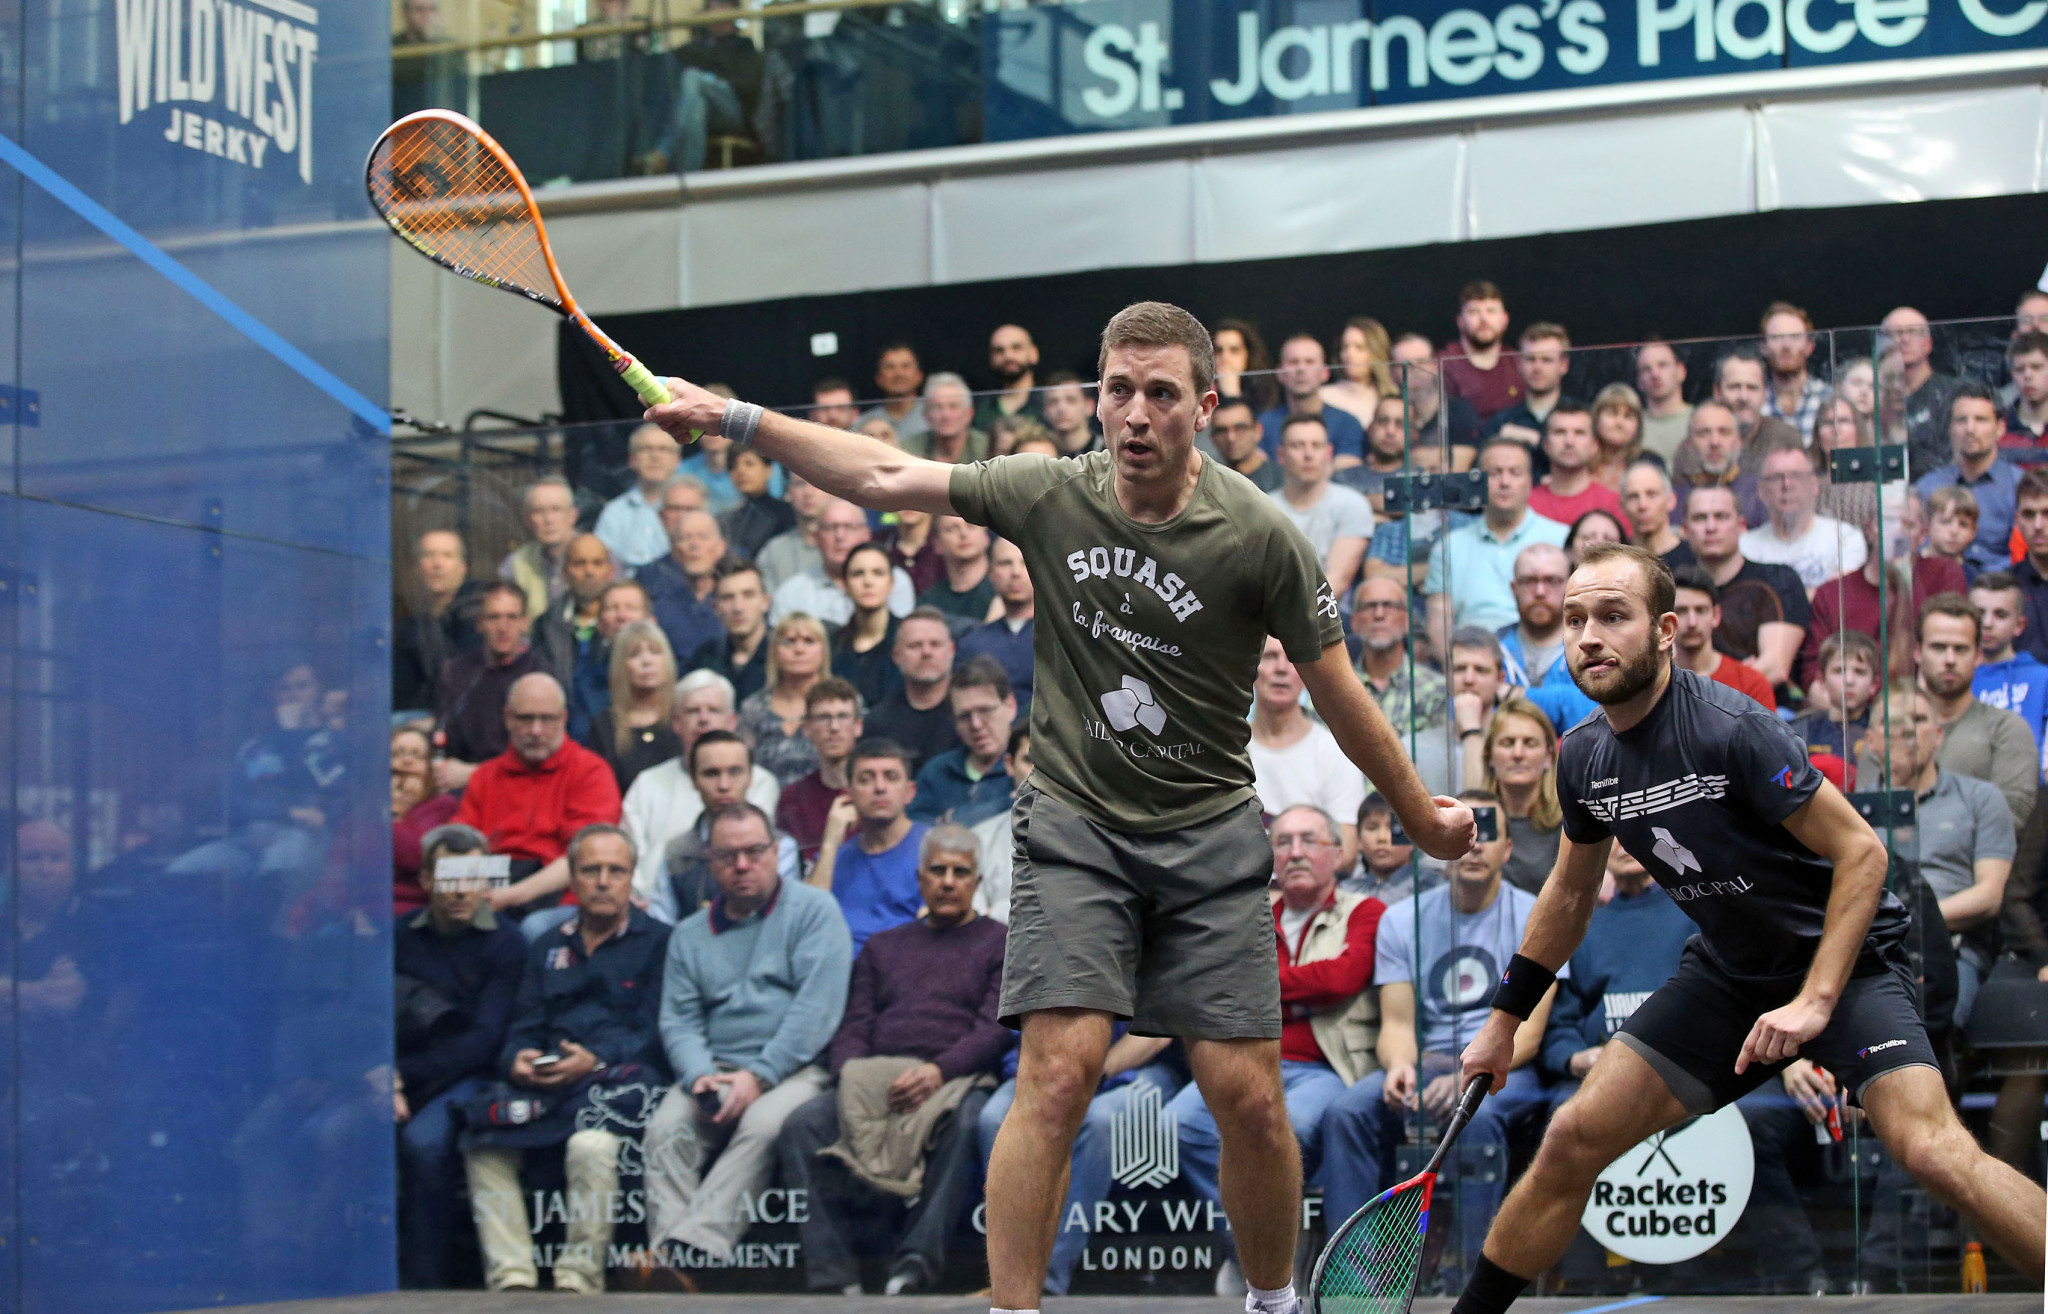 Mathieu Castegnet will face world number one Mohamed ElShorbagy in round two of the Canary Wharf Classic ©PSA